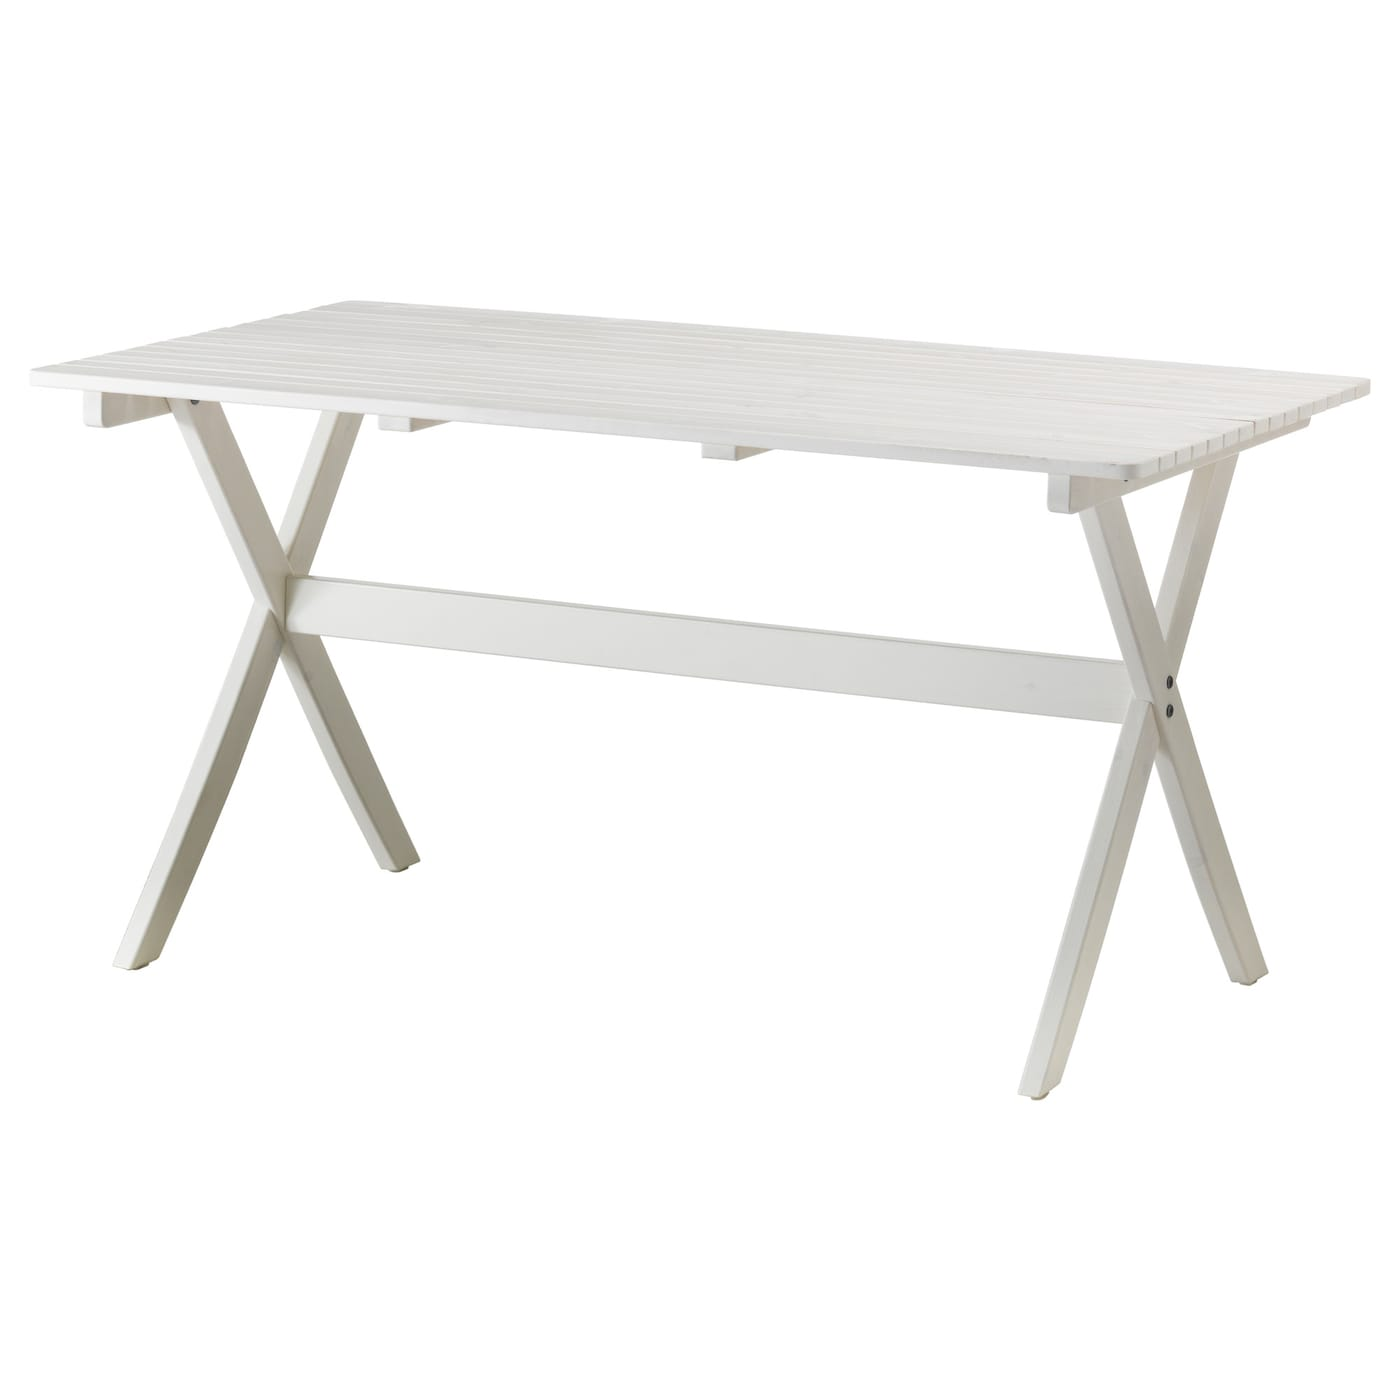 Outdoor Patio Tables Ikea home decor Mrsilva